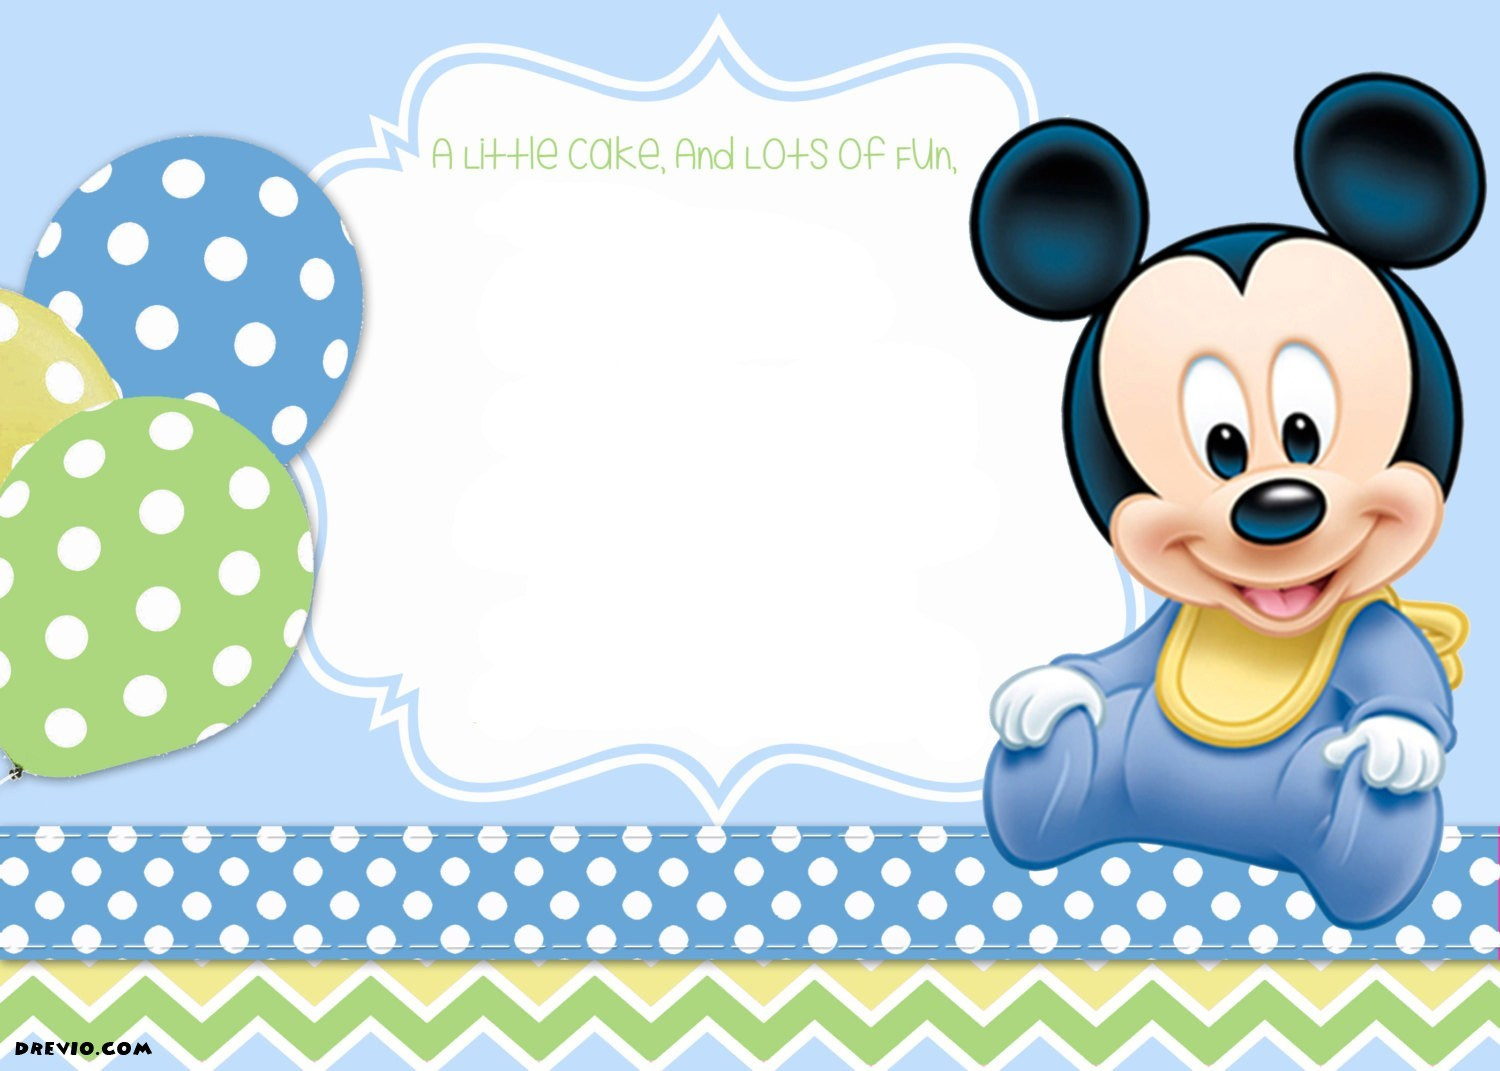 Free Printable Mickey Mouse 1St Birthday Invitations Template Drevio - Free Printable Mickey Mouse 1St Birthday Invitations